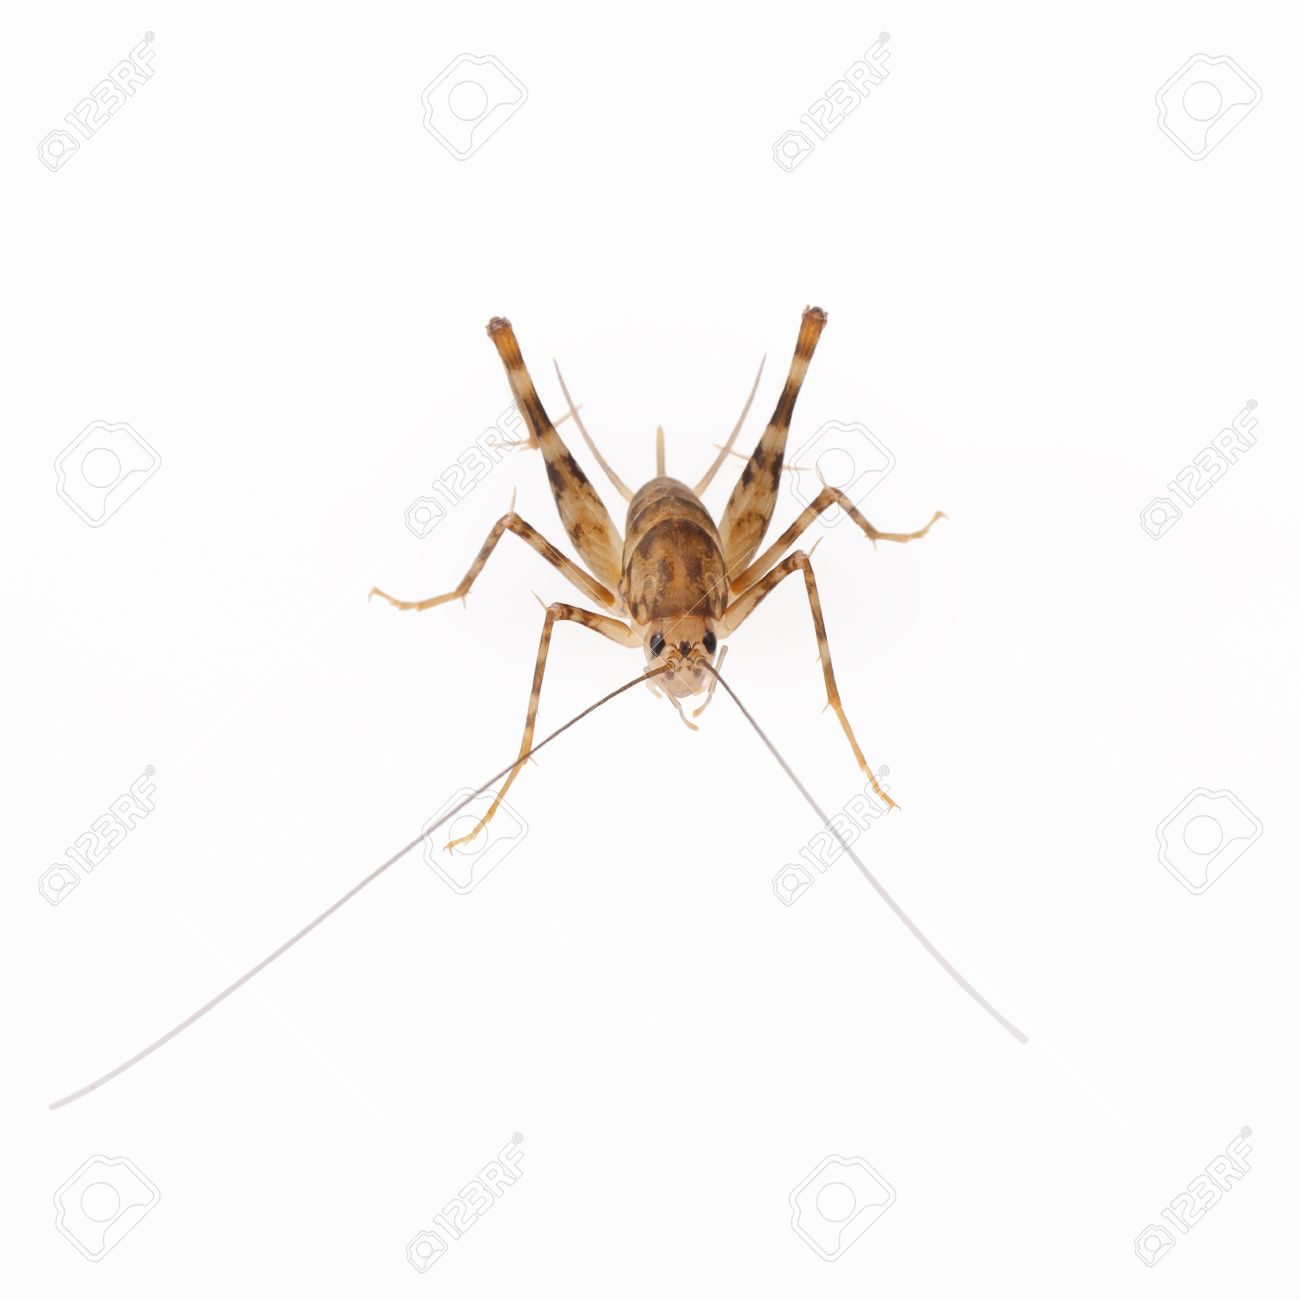 cricket spider it is characterized in part by long antennae and